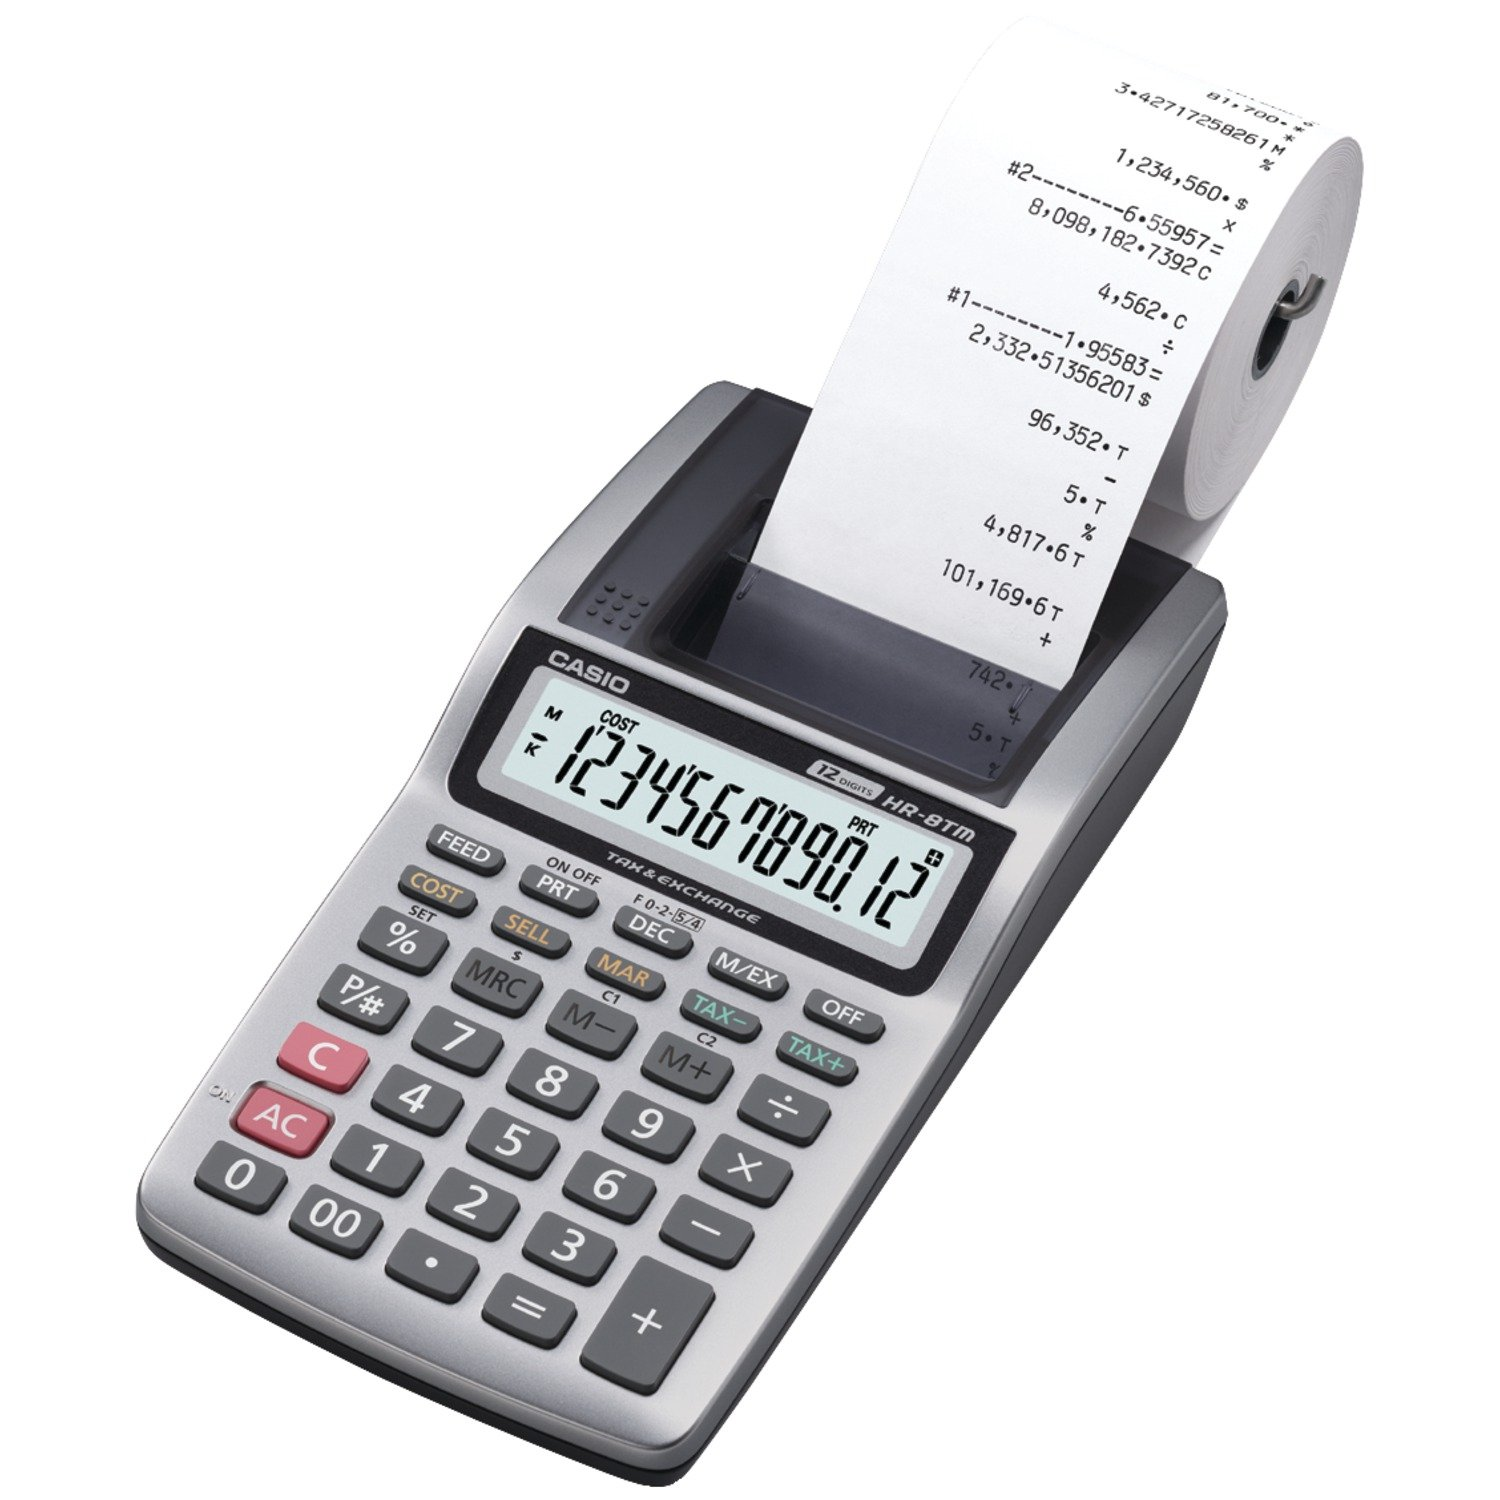 Calculator | Shop Amazon.com